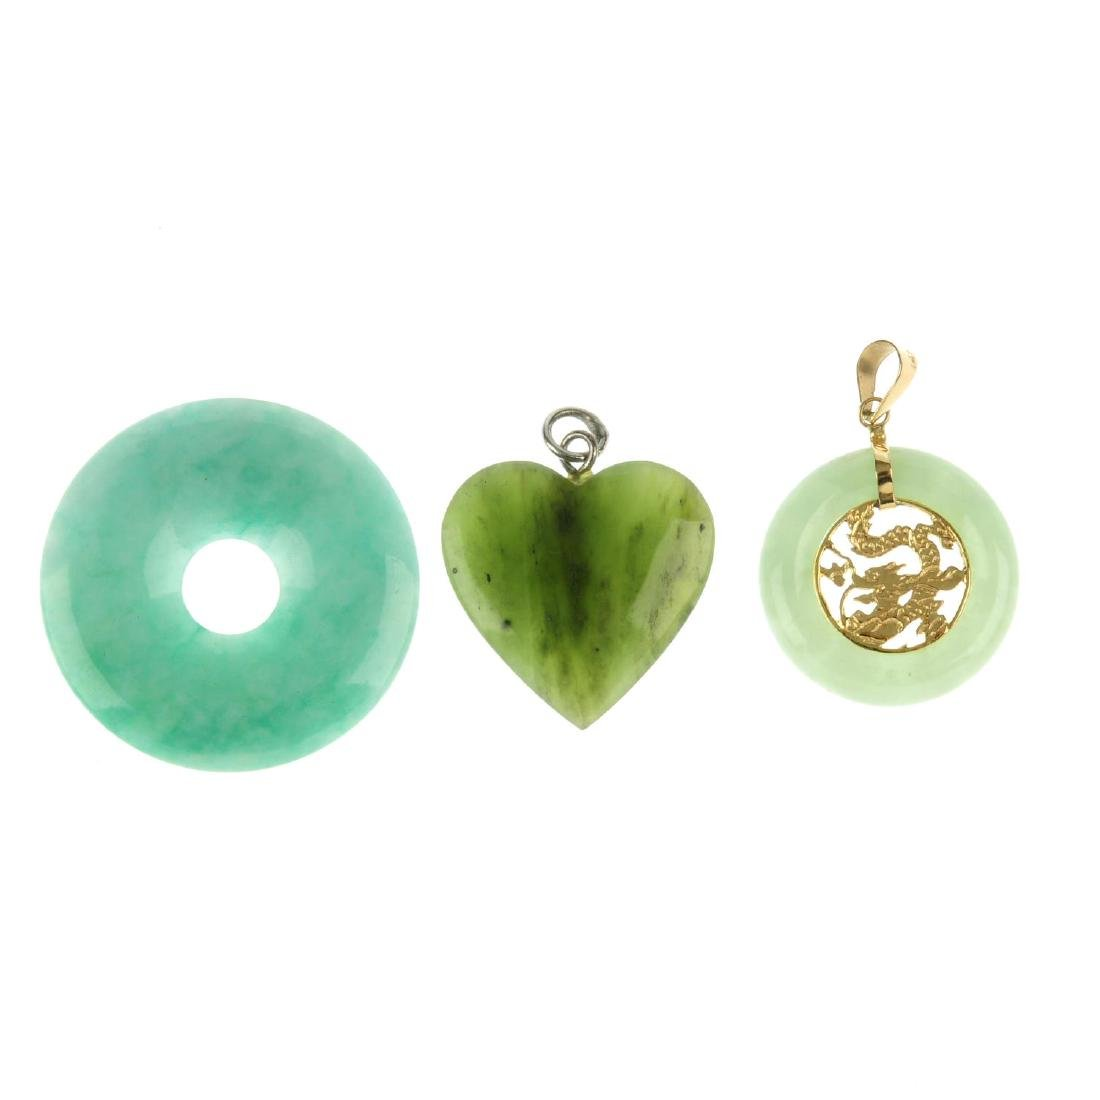 Three jade pendants and a pair of Trifari earrings. The